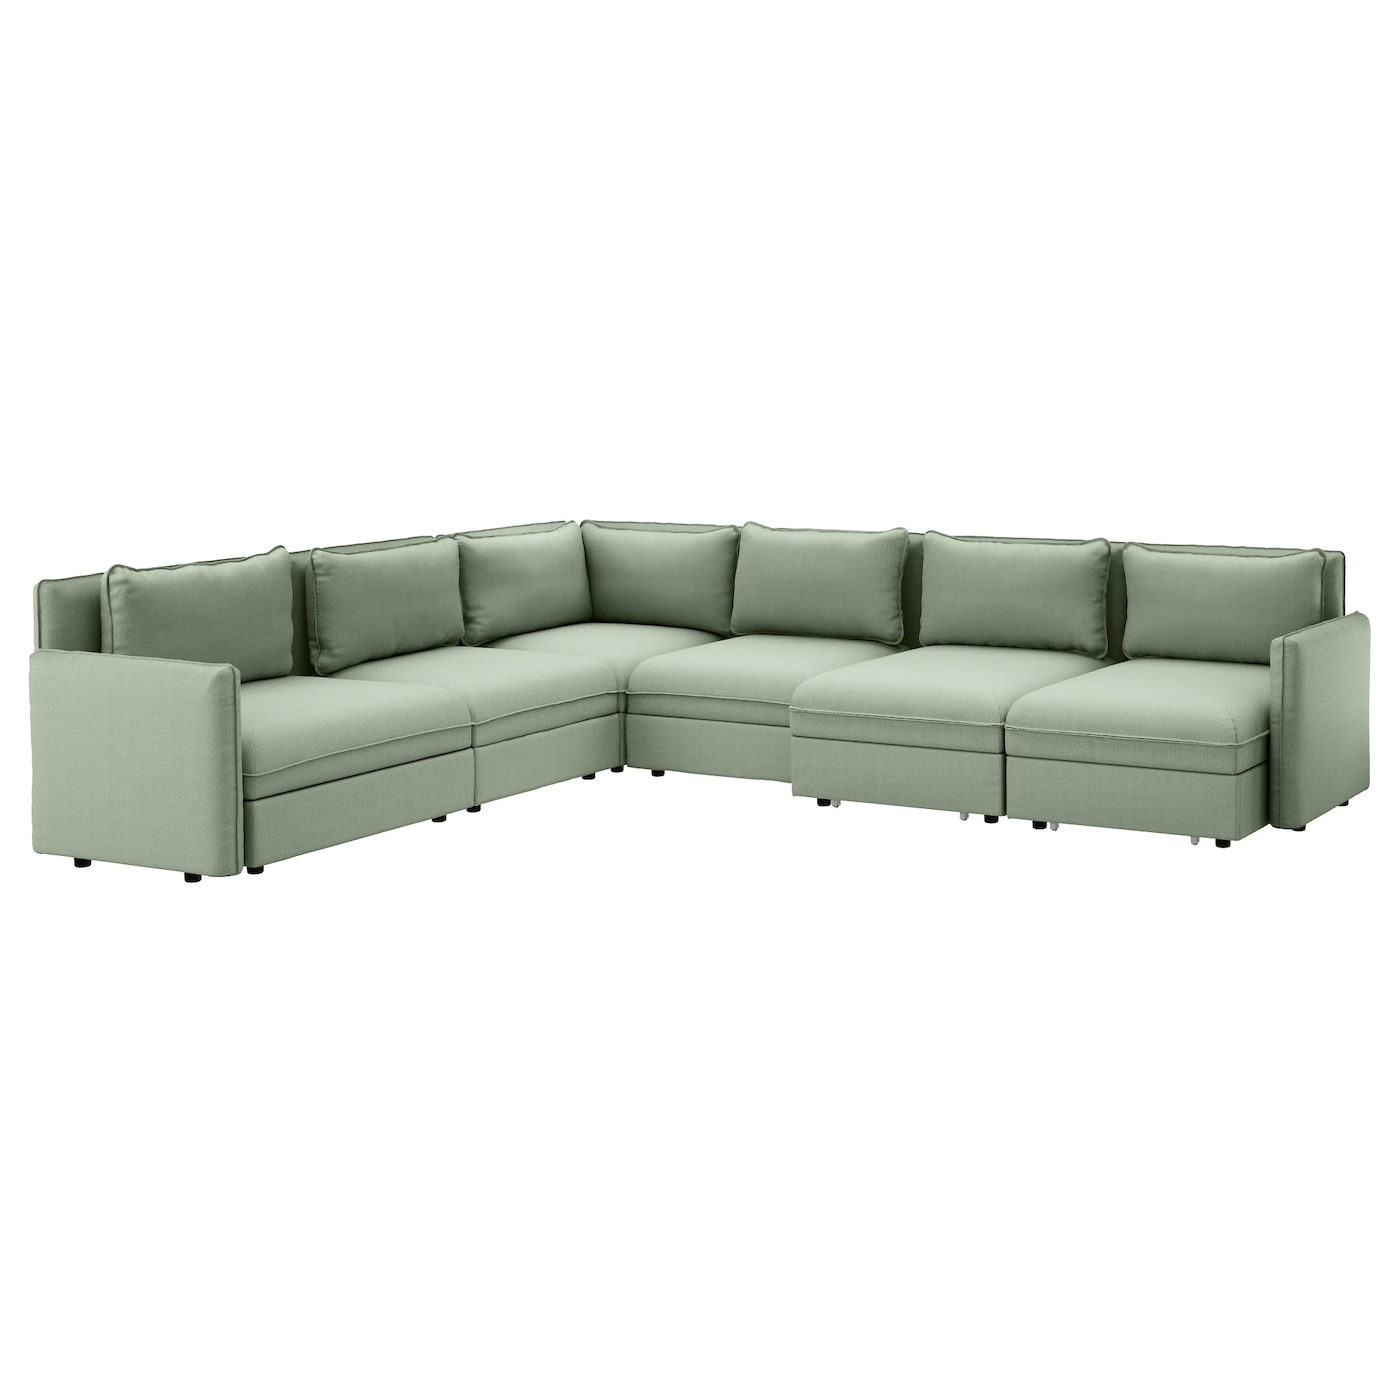 Ikea Vallentuna 6 Seat Corner Sofa With Bed